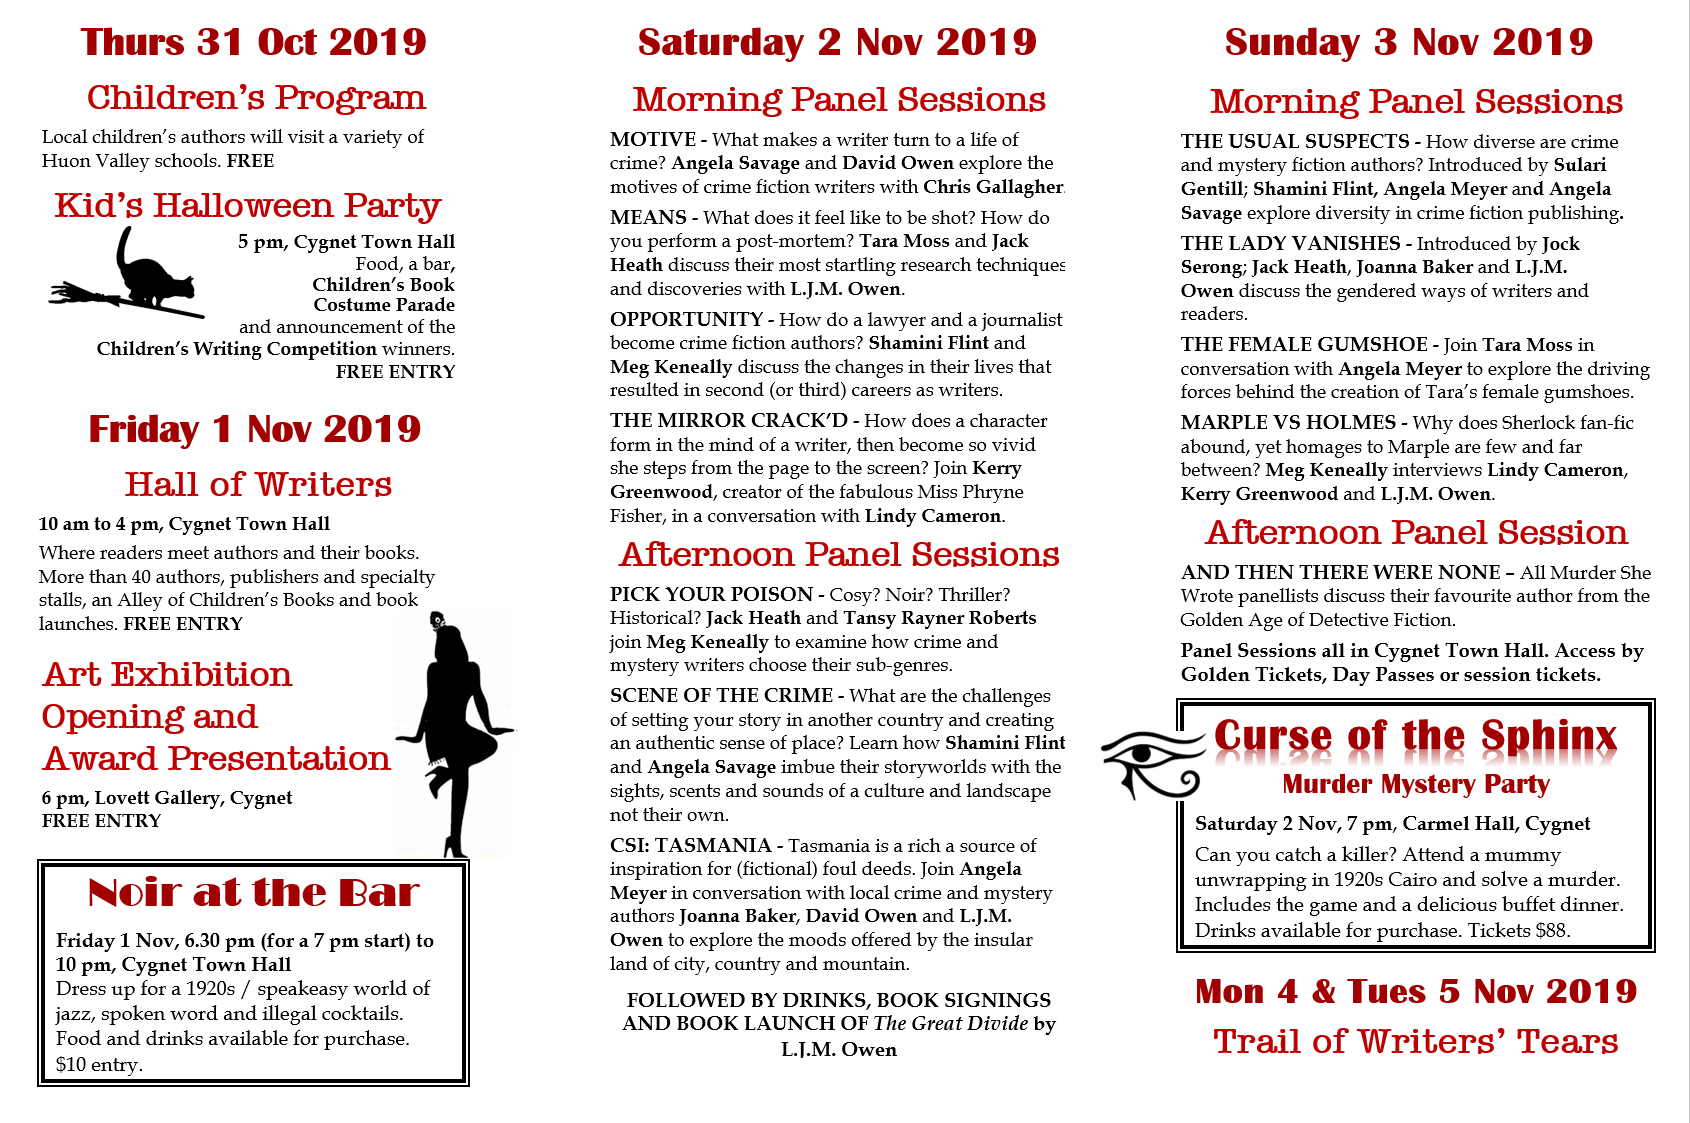 QUICK GLANCE PROGRAM FOR DAYS 1 TO 4 OF THE FESTIVAL, 31 OCT TO 3 NOV 2019